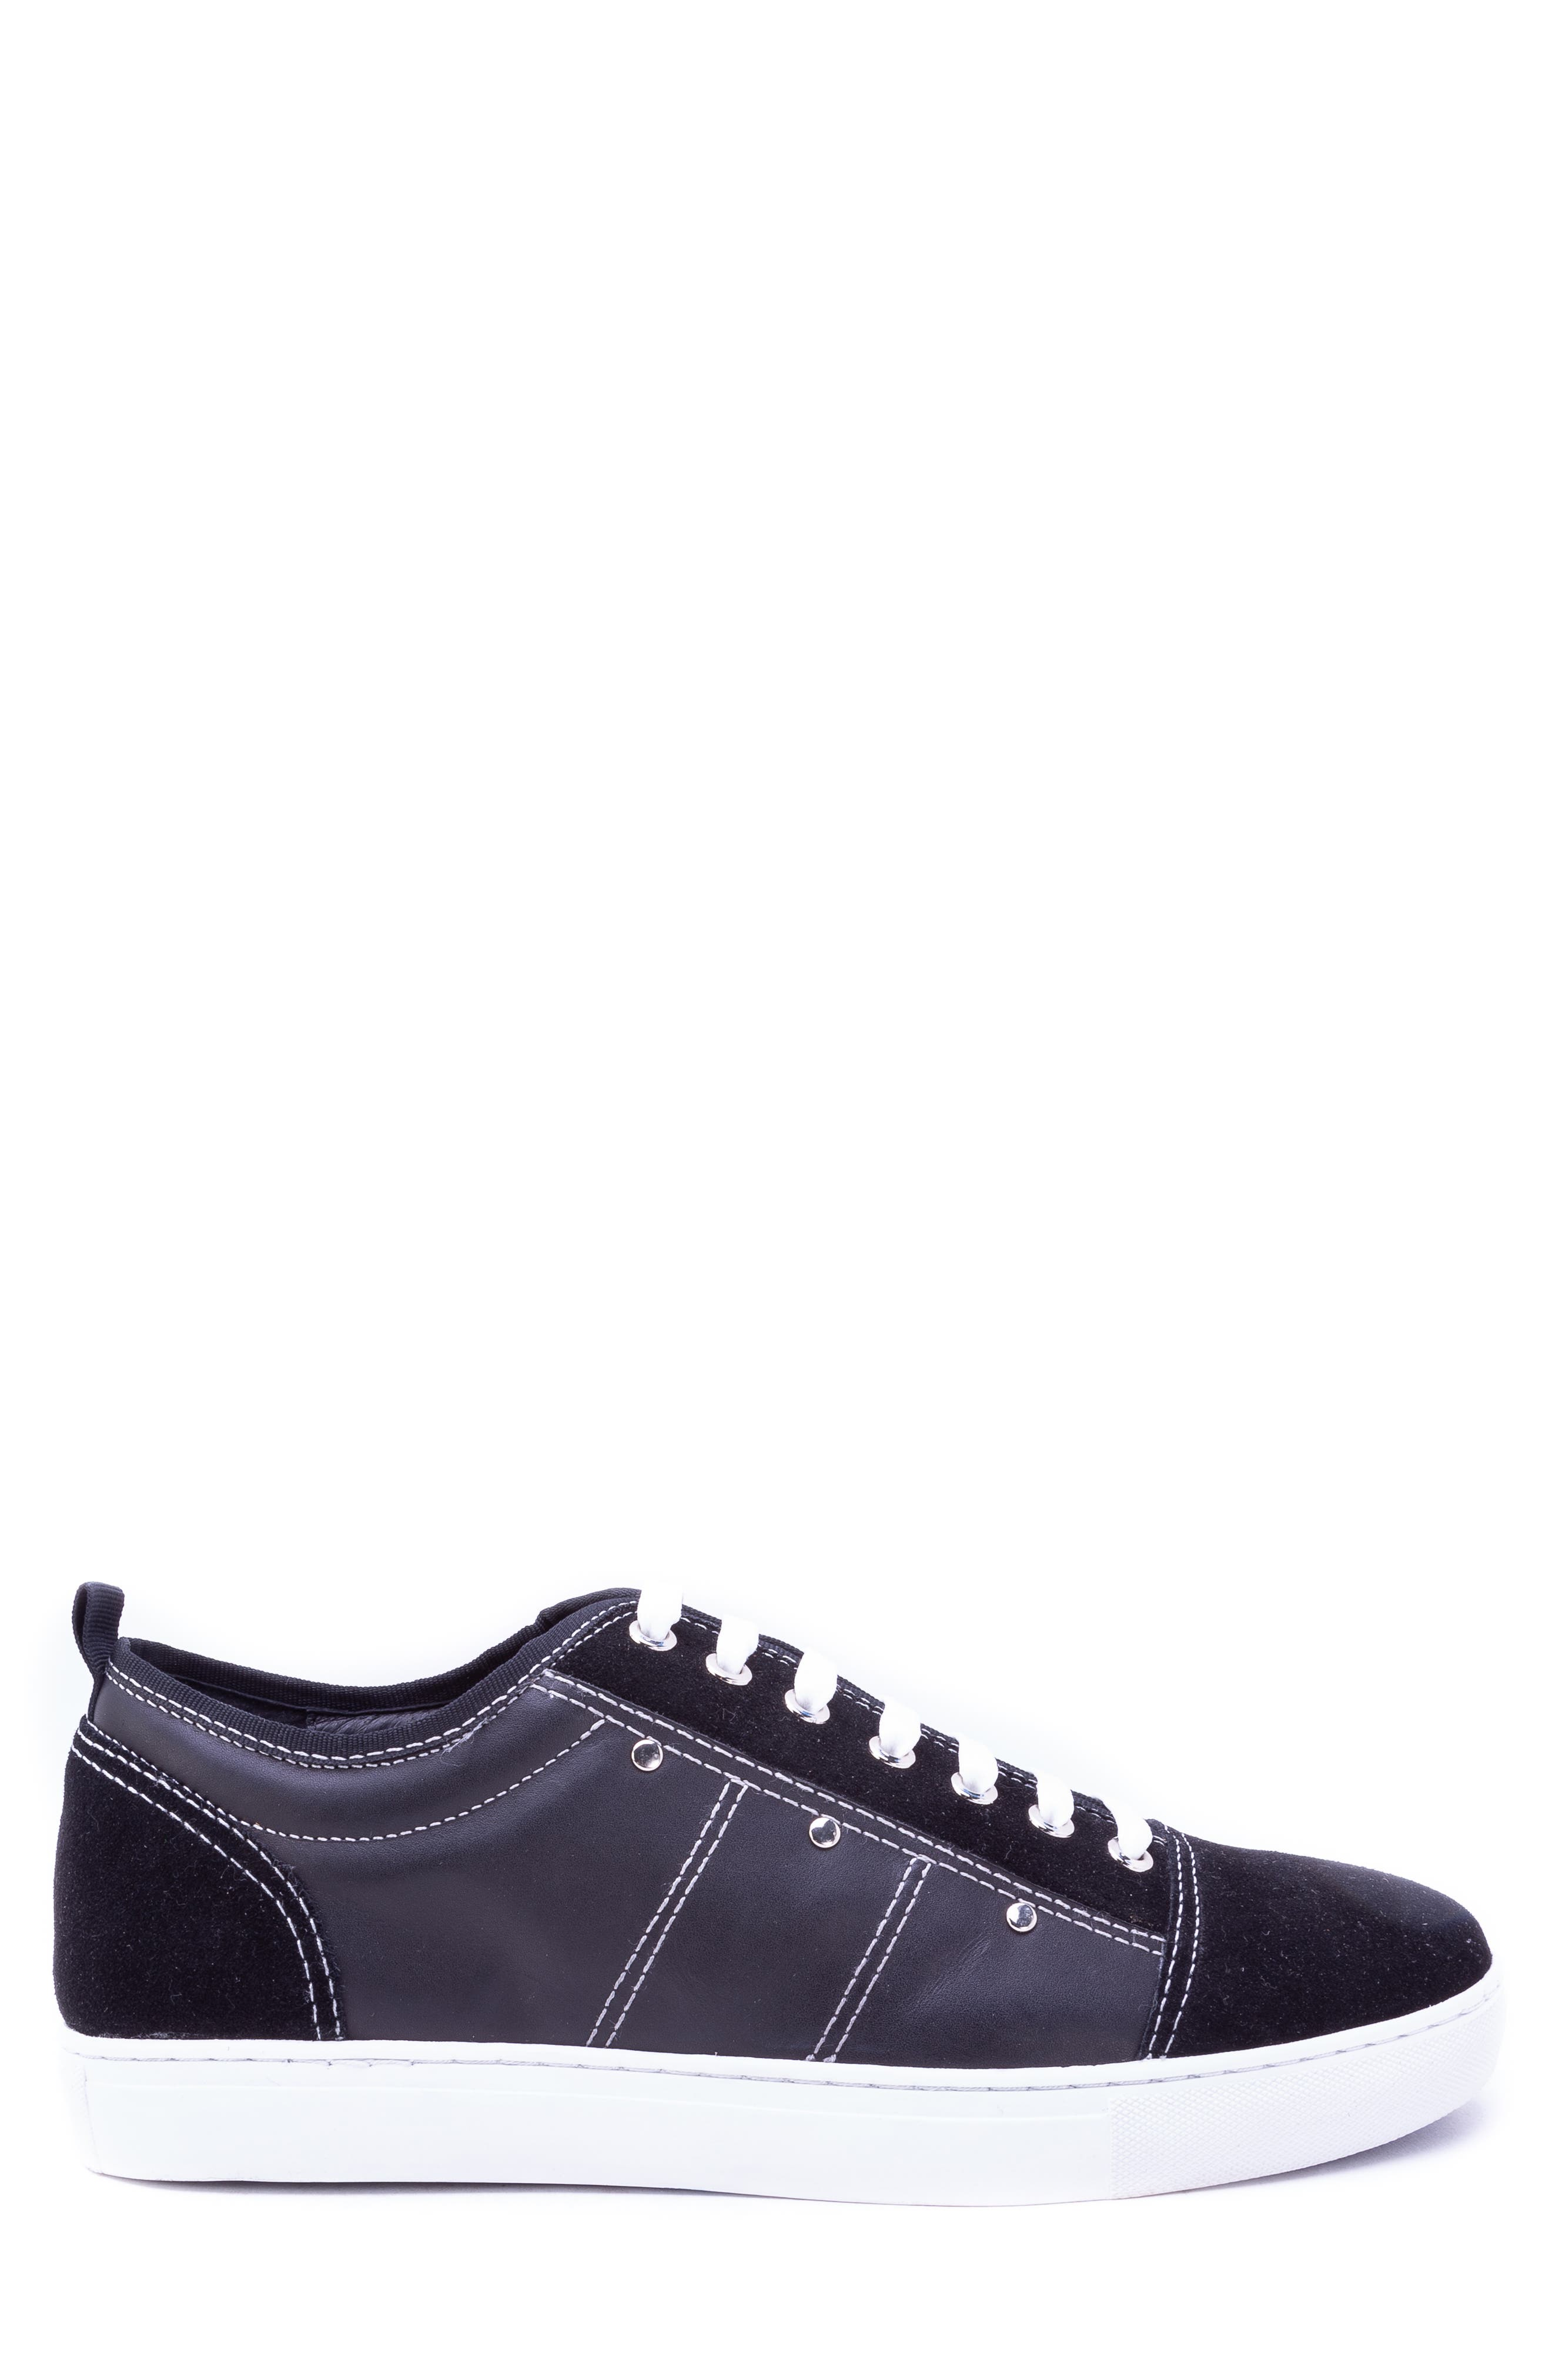 Severn Studded Low Top Sneaker,                             Alternate thumbnail 3, color,                             BLACK SUEDE/ LEATHER